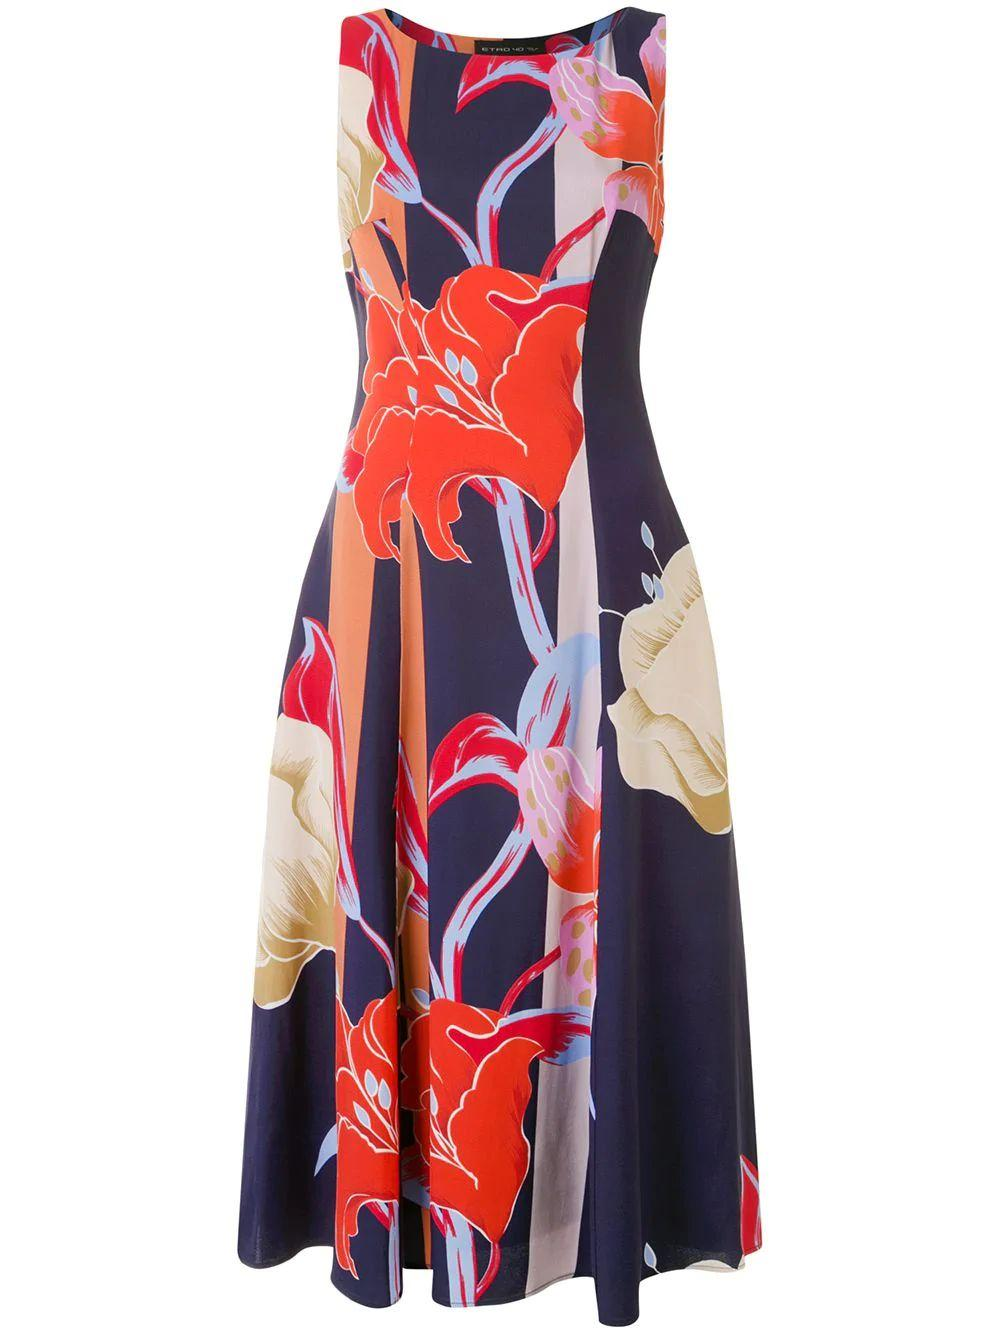 Ibisco Sleeveless Printed Fit Flare Dress Item # 13449-4272